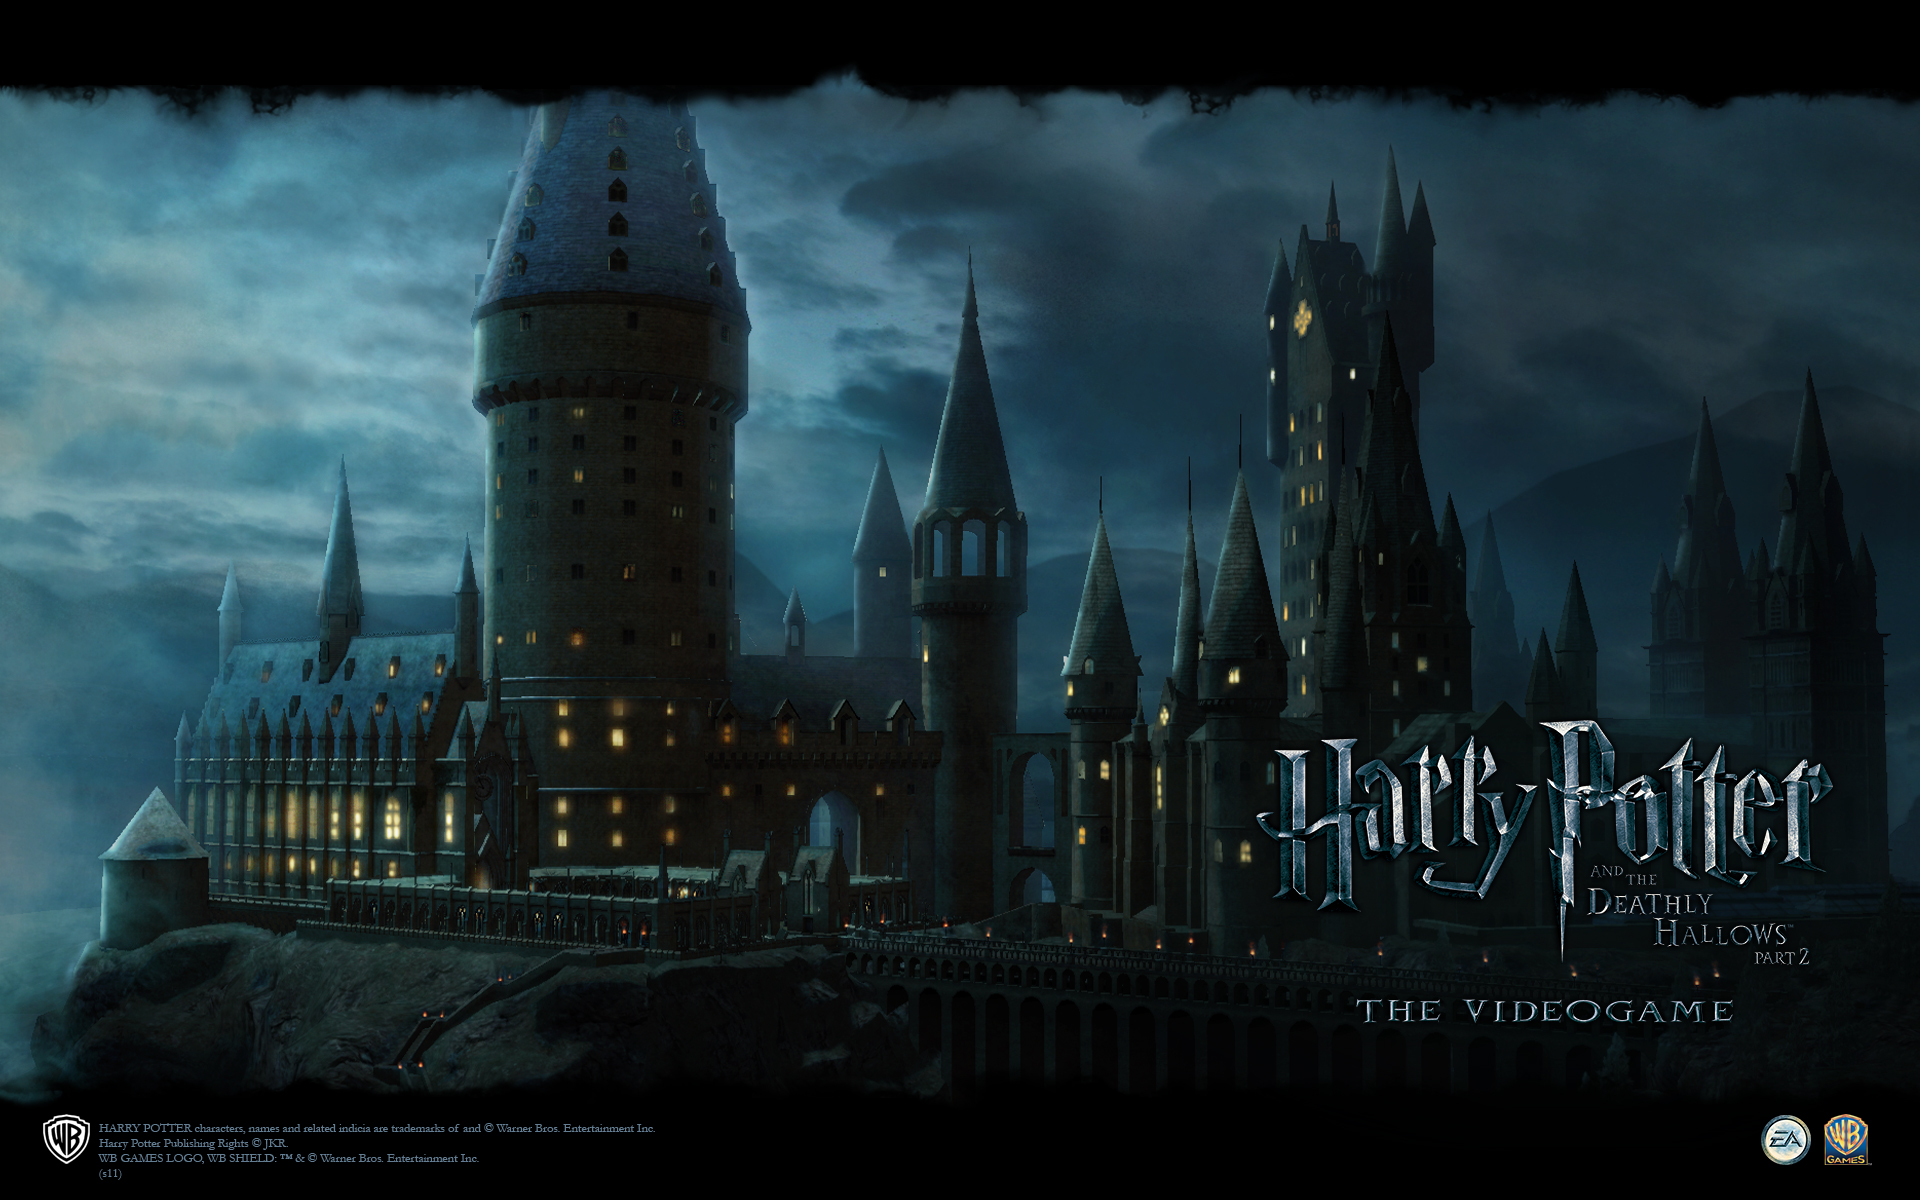 Harry Potter Logo Slytherin Index Of Ebay Store Patches Pictures to 1920x1200